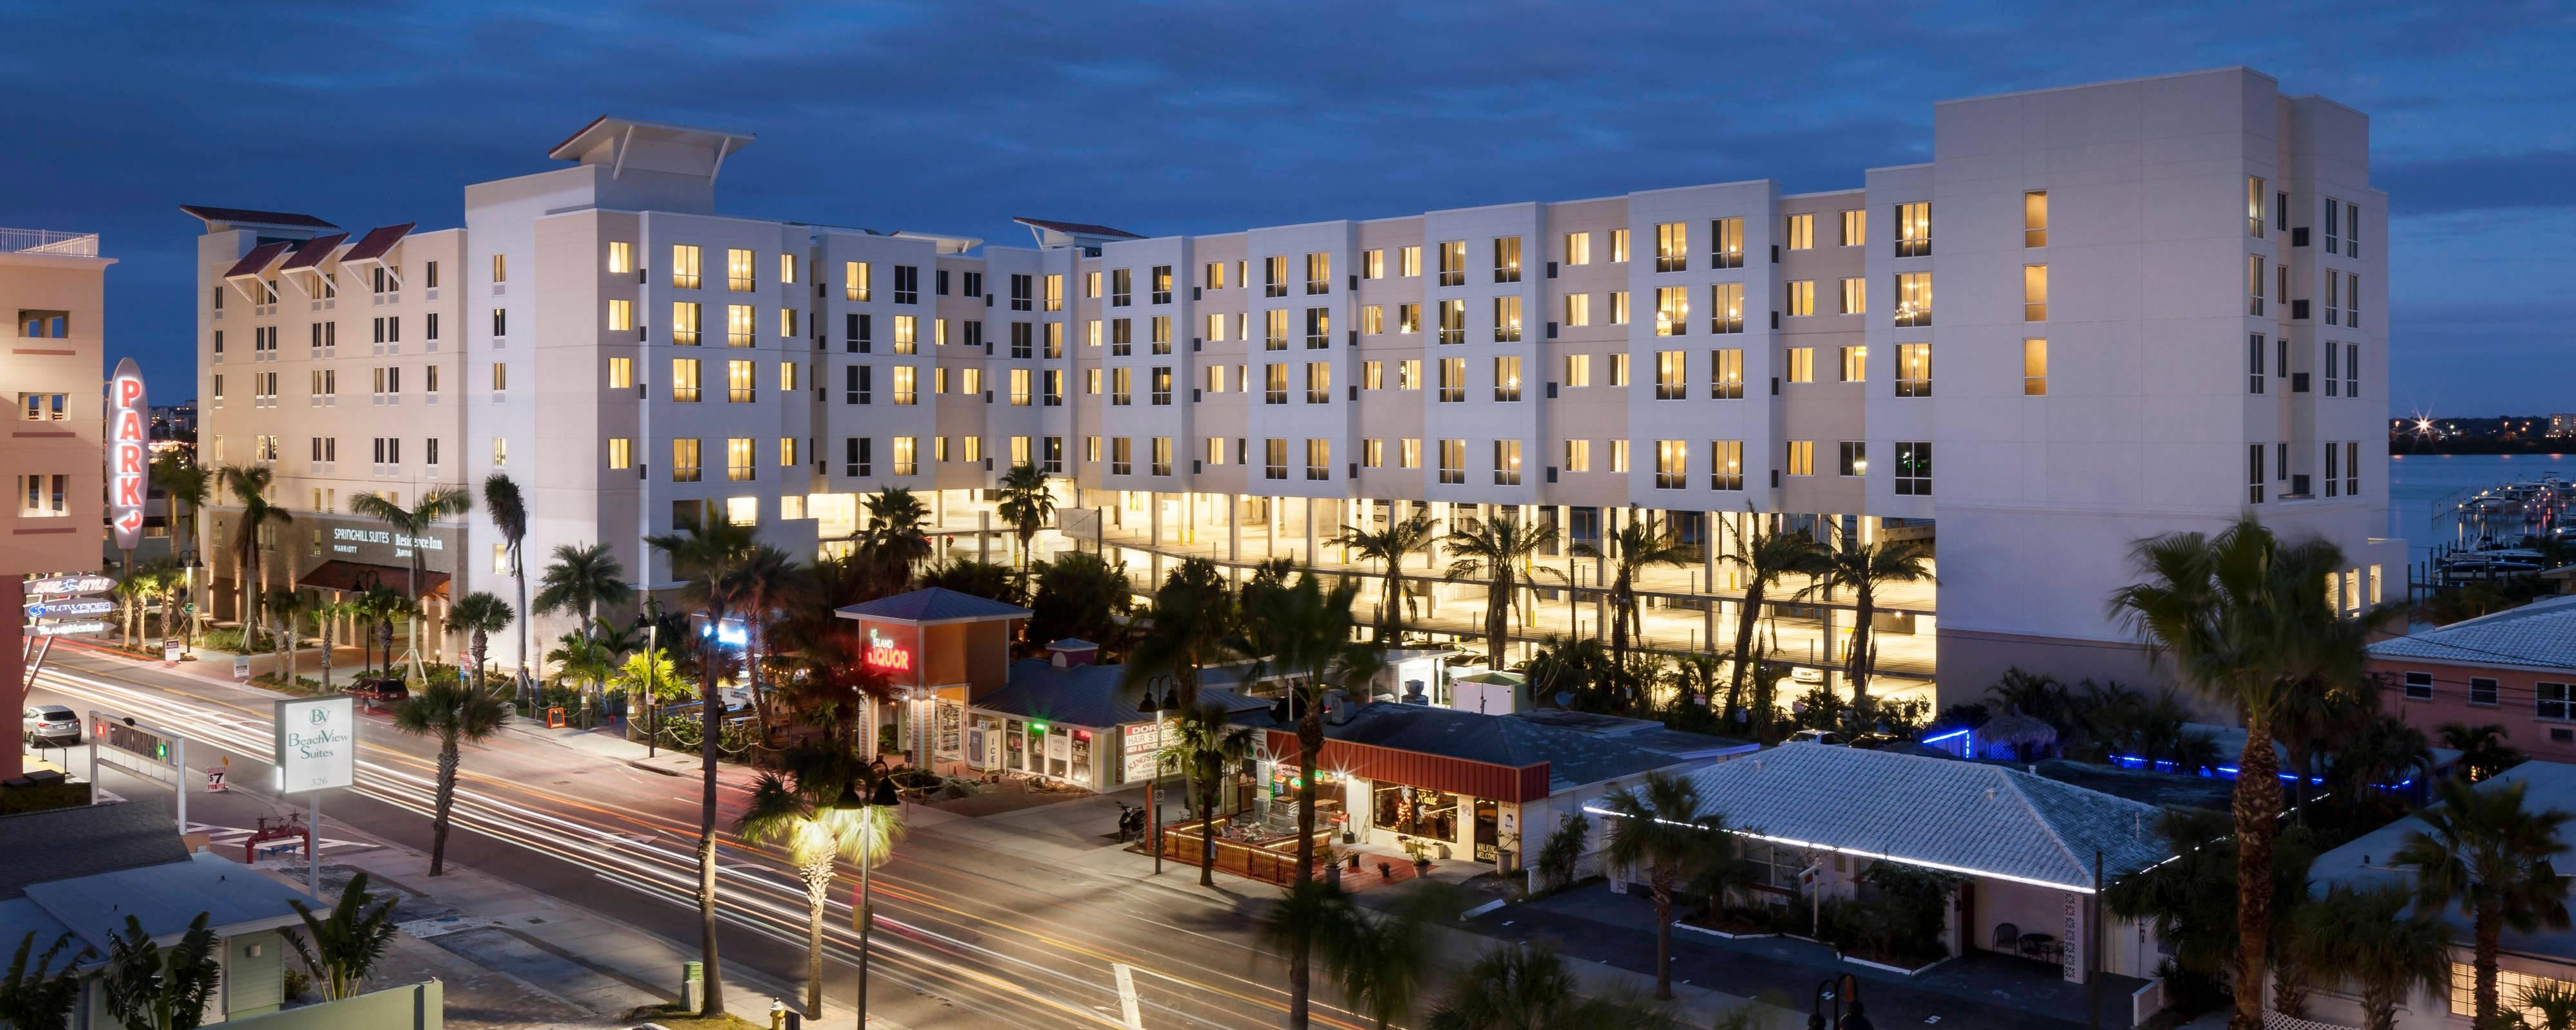 Hotels in Clearwater Beach Florida  Residence Inn